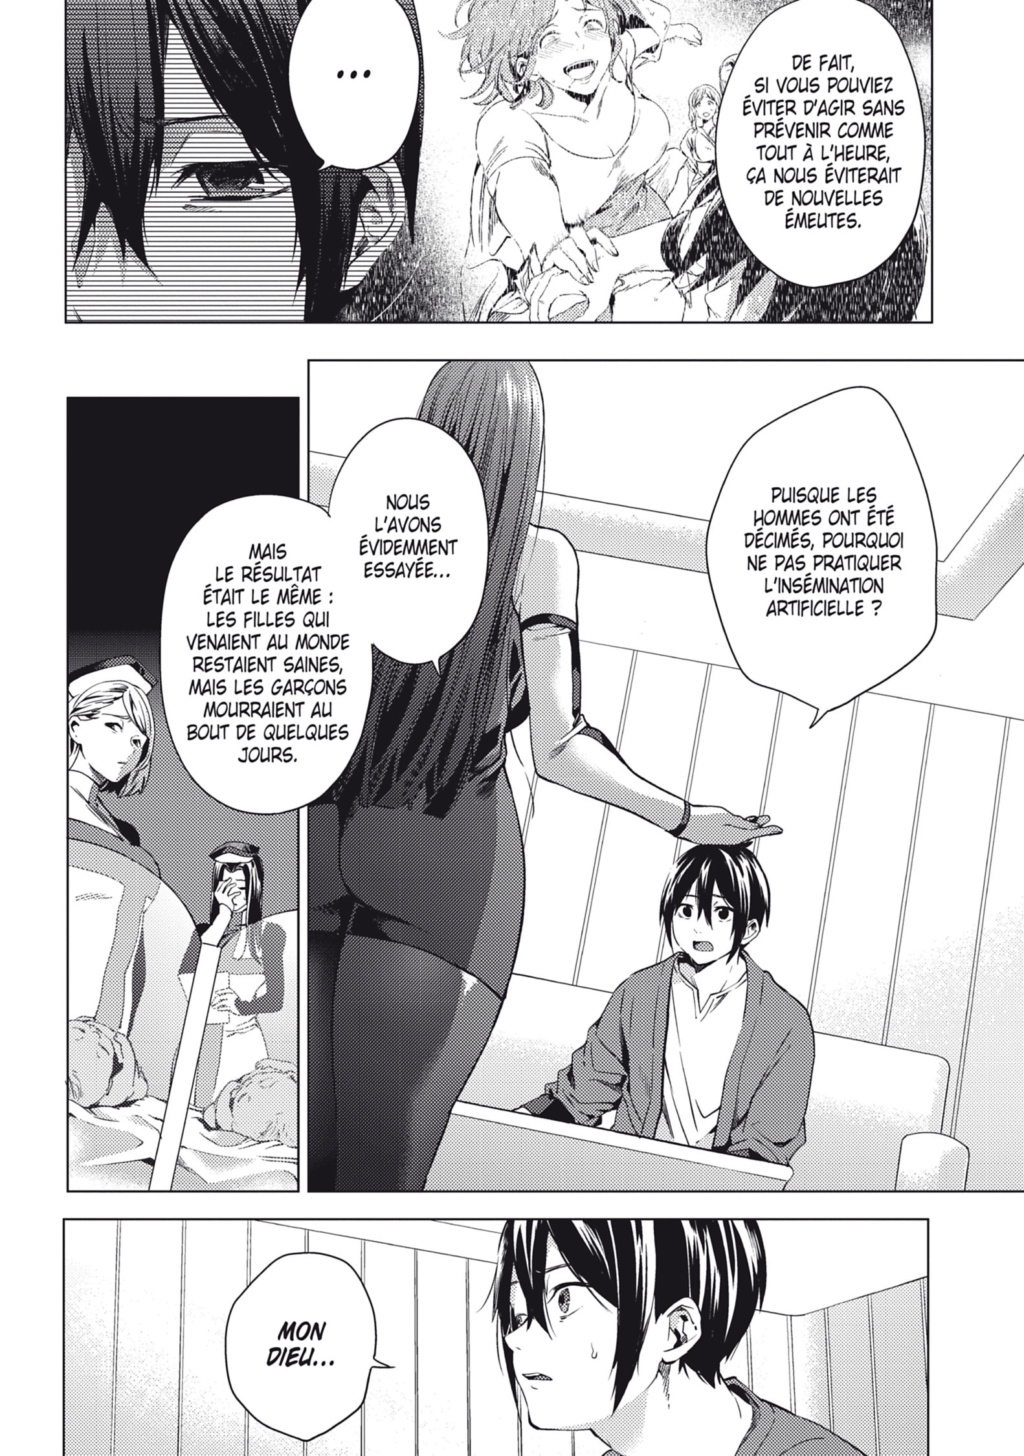 [MANGA] World's End Harem 005910